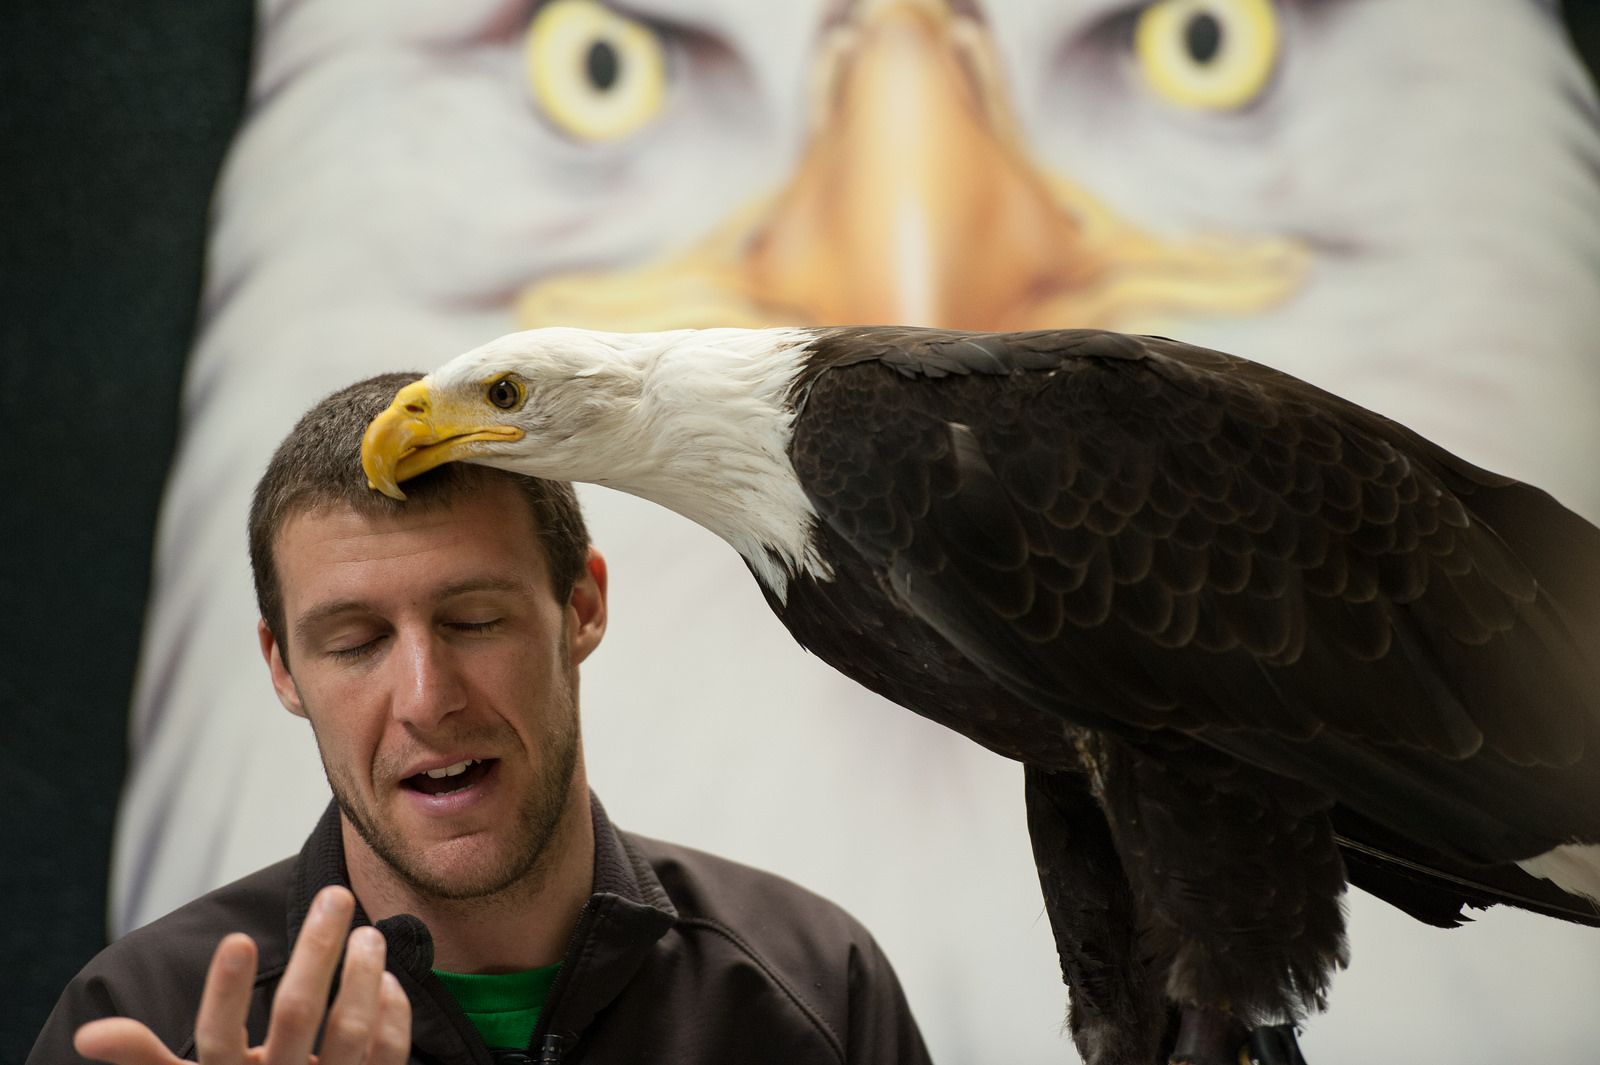 Eagle wiping his postlunch face on a convenient object